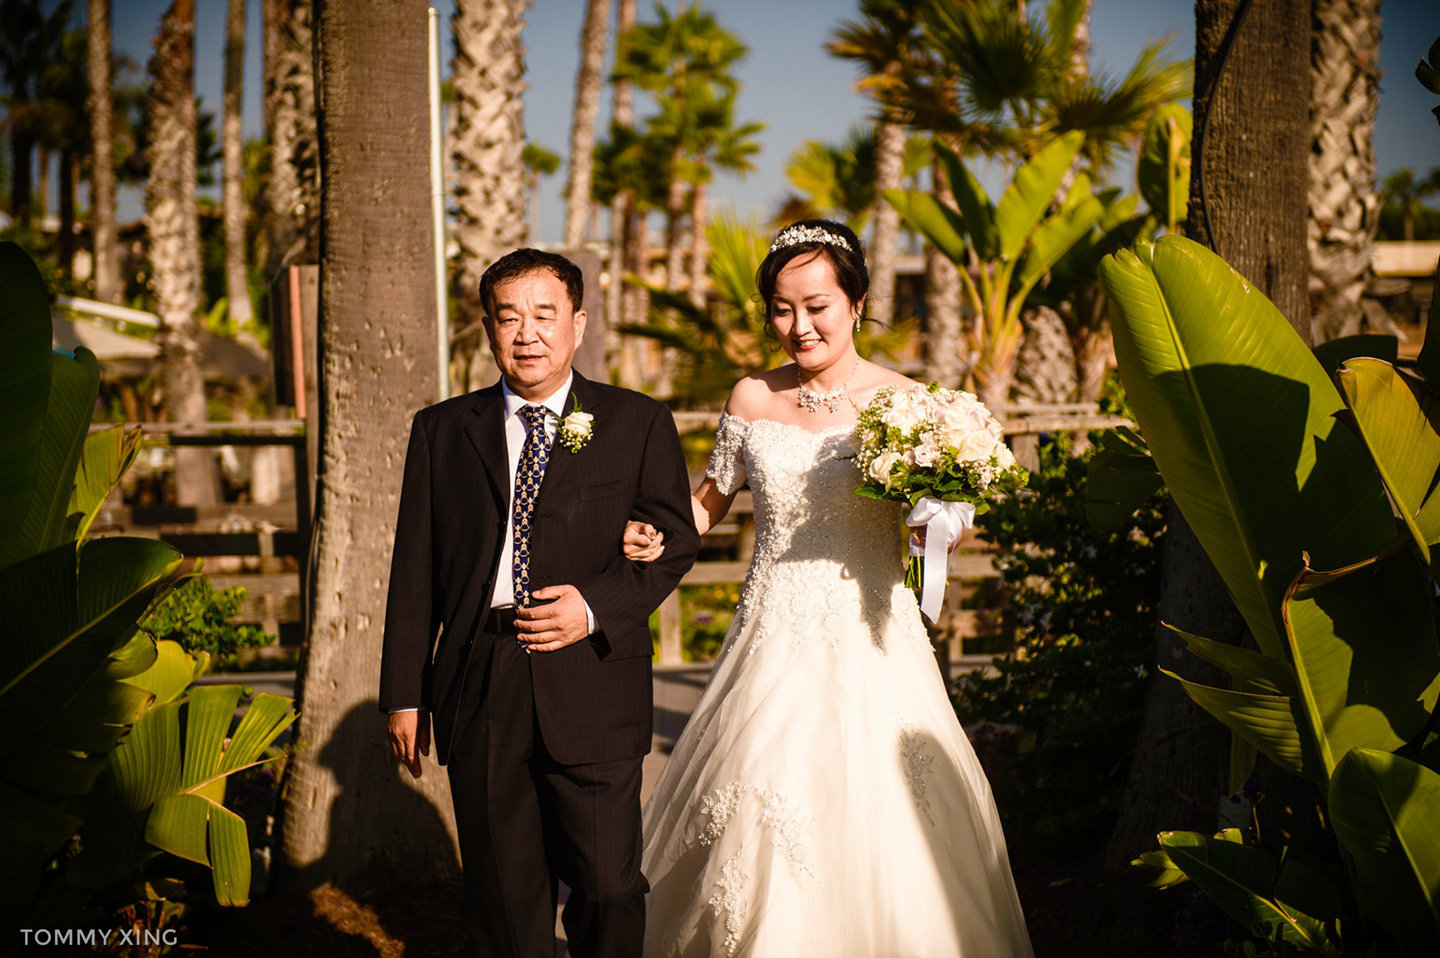 Paradise Point Resort Wedding Xiaolu & Bin San Diego 圣地亚哥婚礼摄影跟拍 Tommy Xing Photography 洛杉矶婚礼婚纱照摄影师 108.jpg